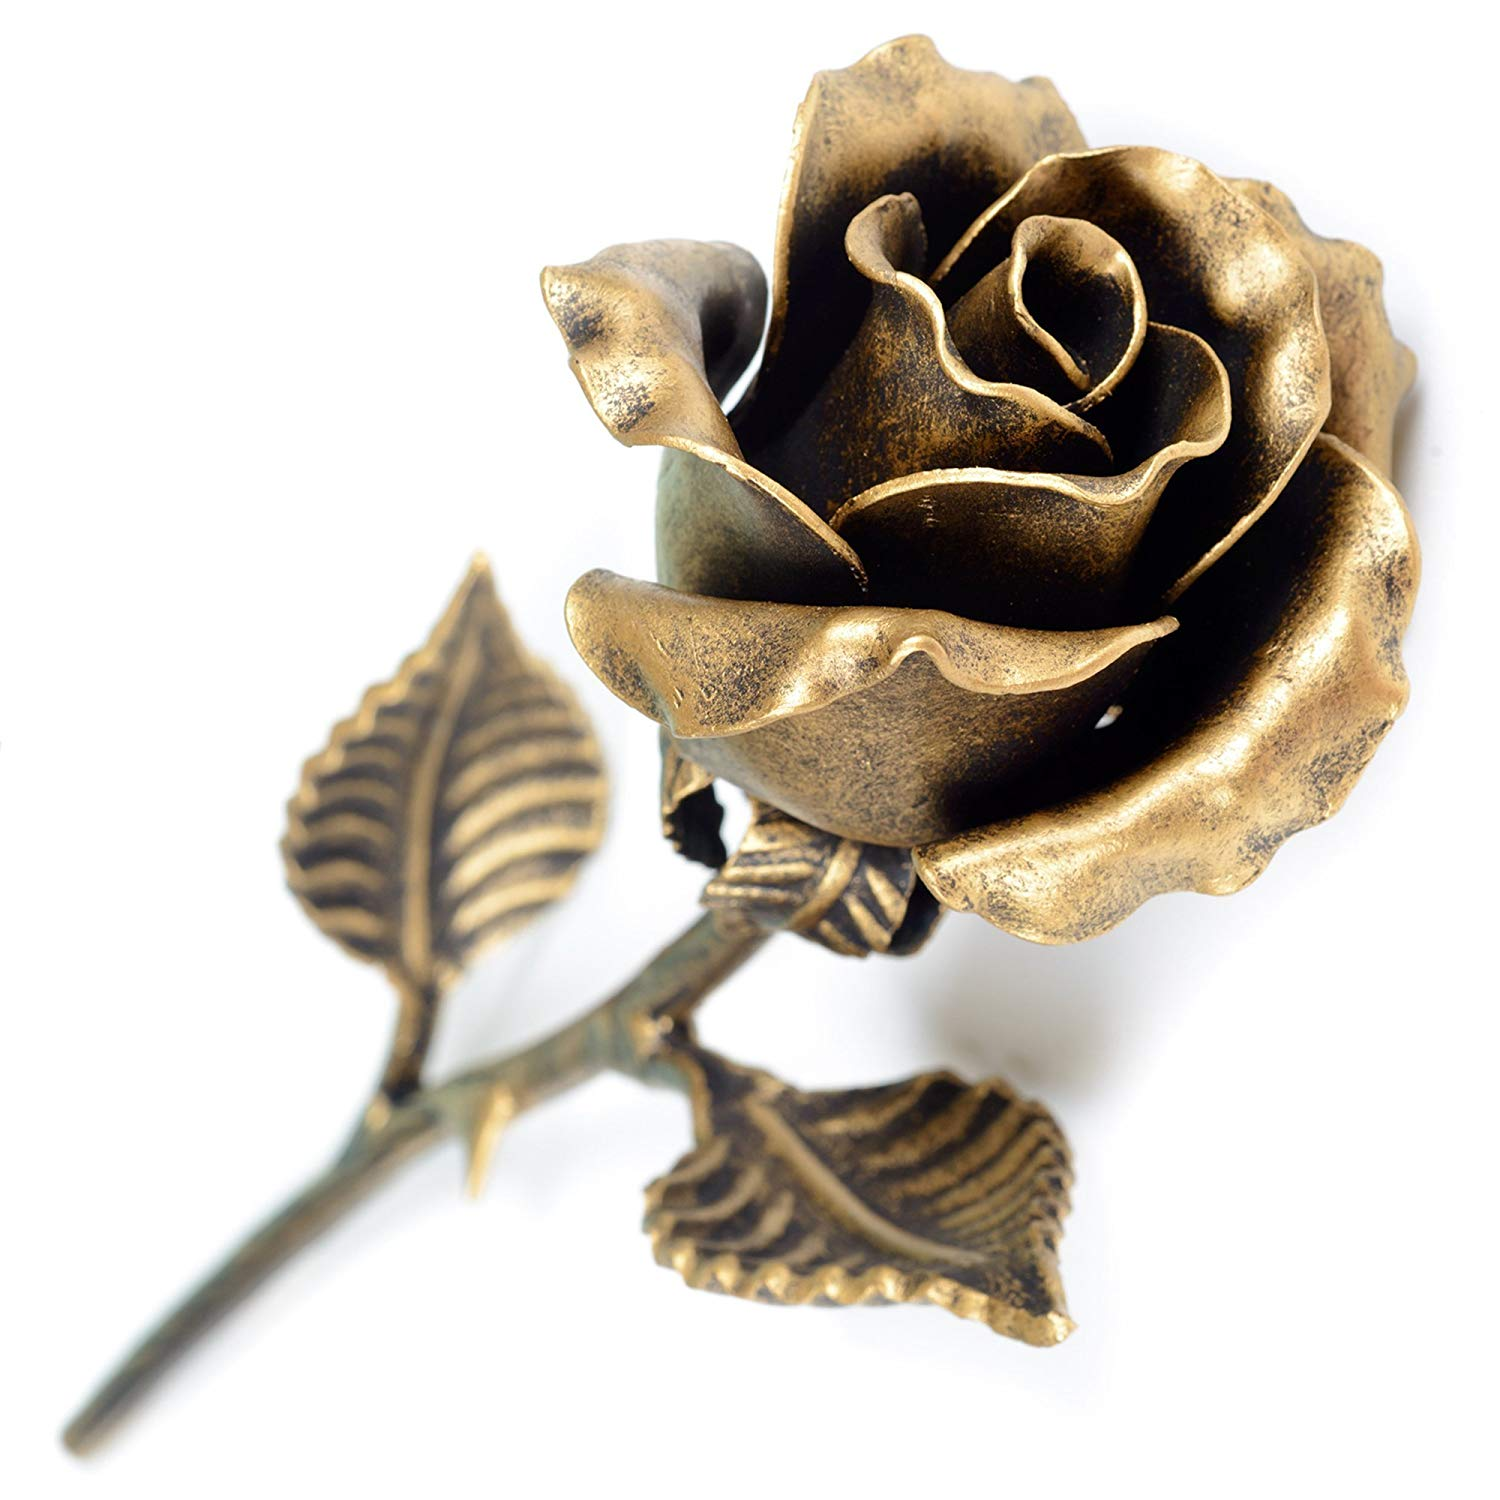 Hand forged metal rose (bronze stained) - Unique Anniversary Gift for Her